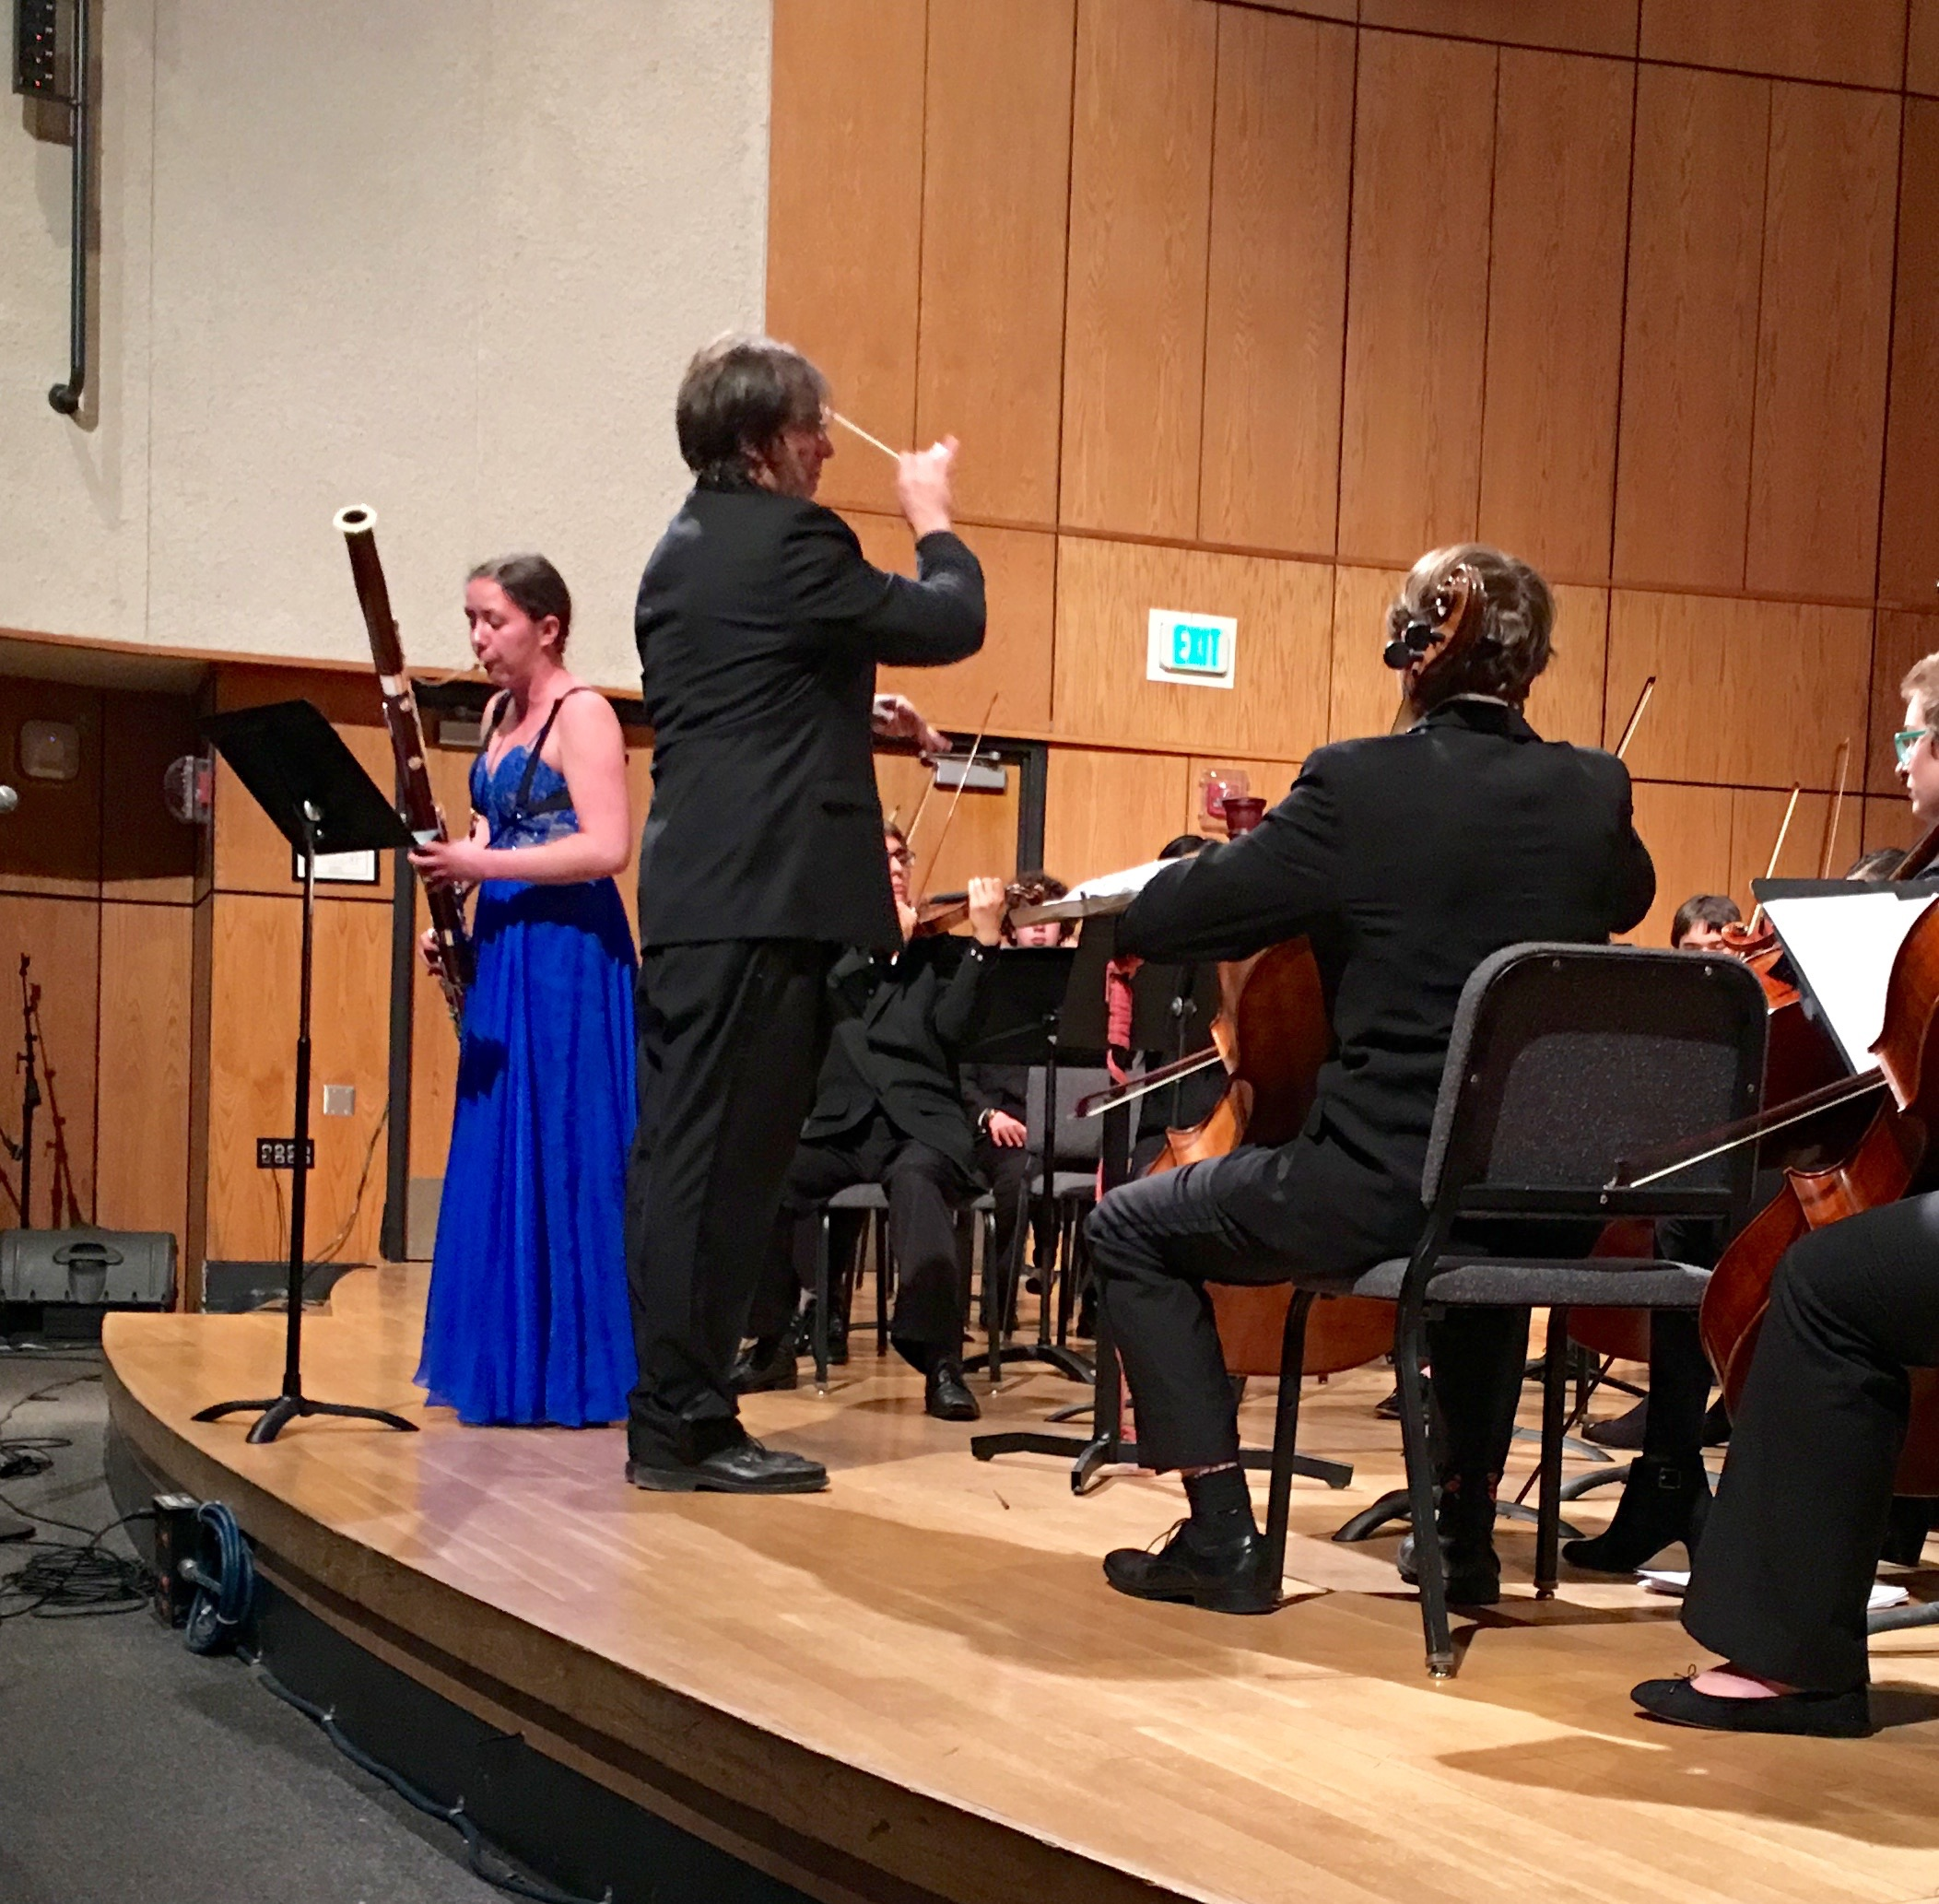 Tatia Slouka performs at the Concerto Concert 2/26/16.